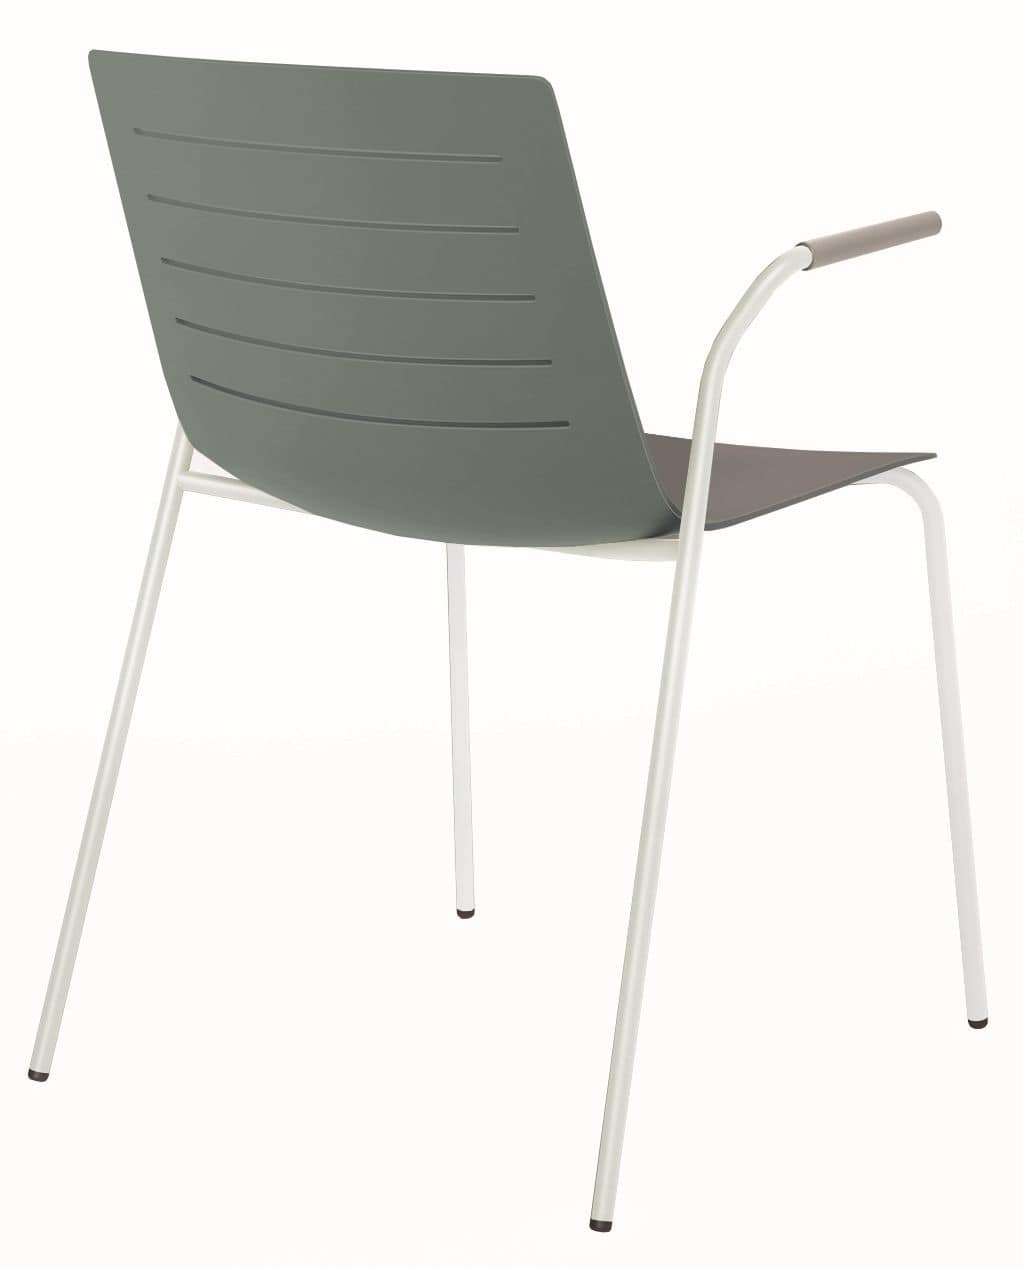 Slim 01A, Stackable chair with armrests ideal for conference room